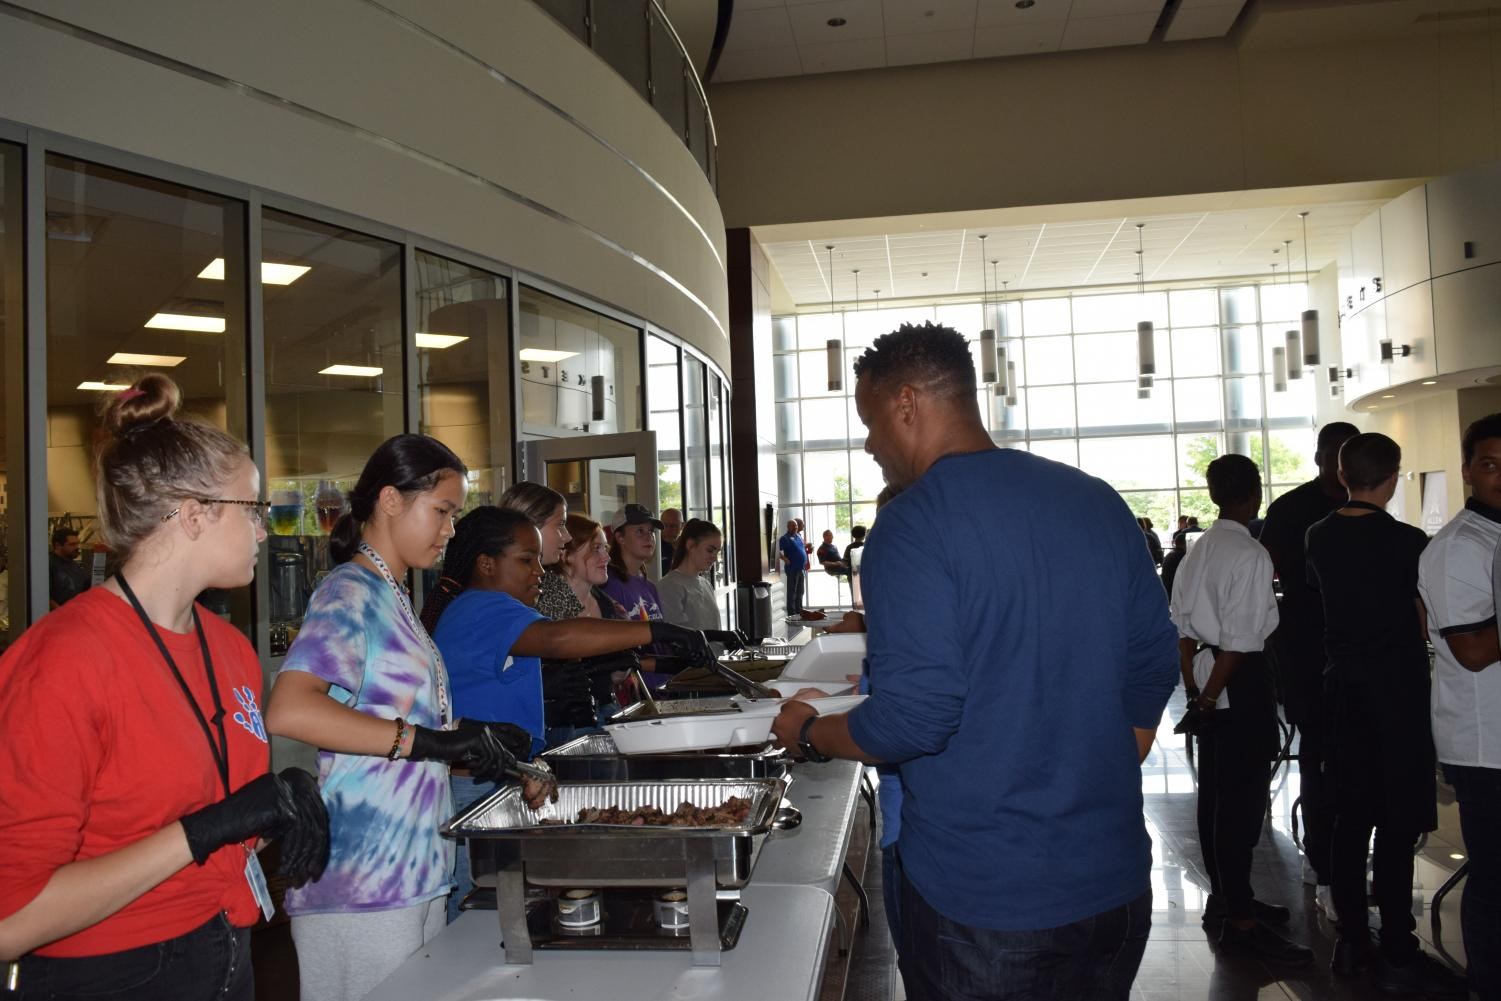 Blú students serve barbecue to staff members.